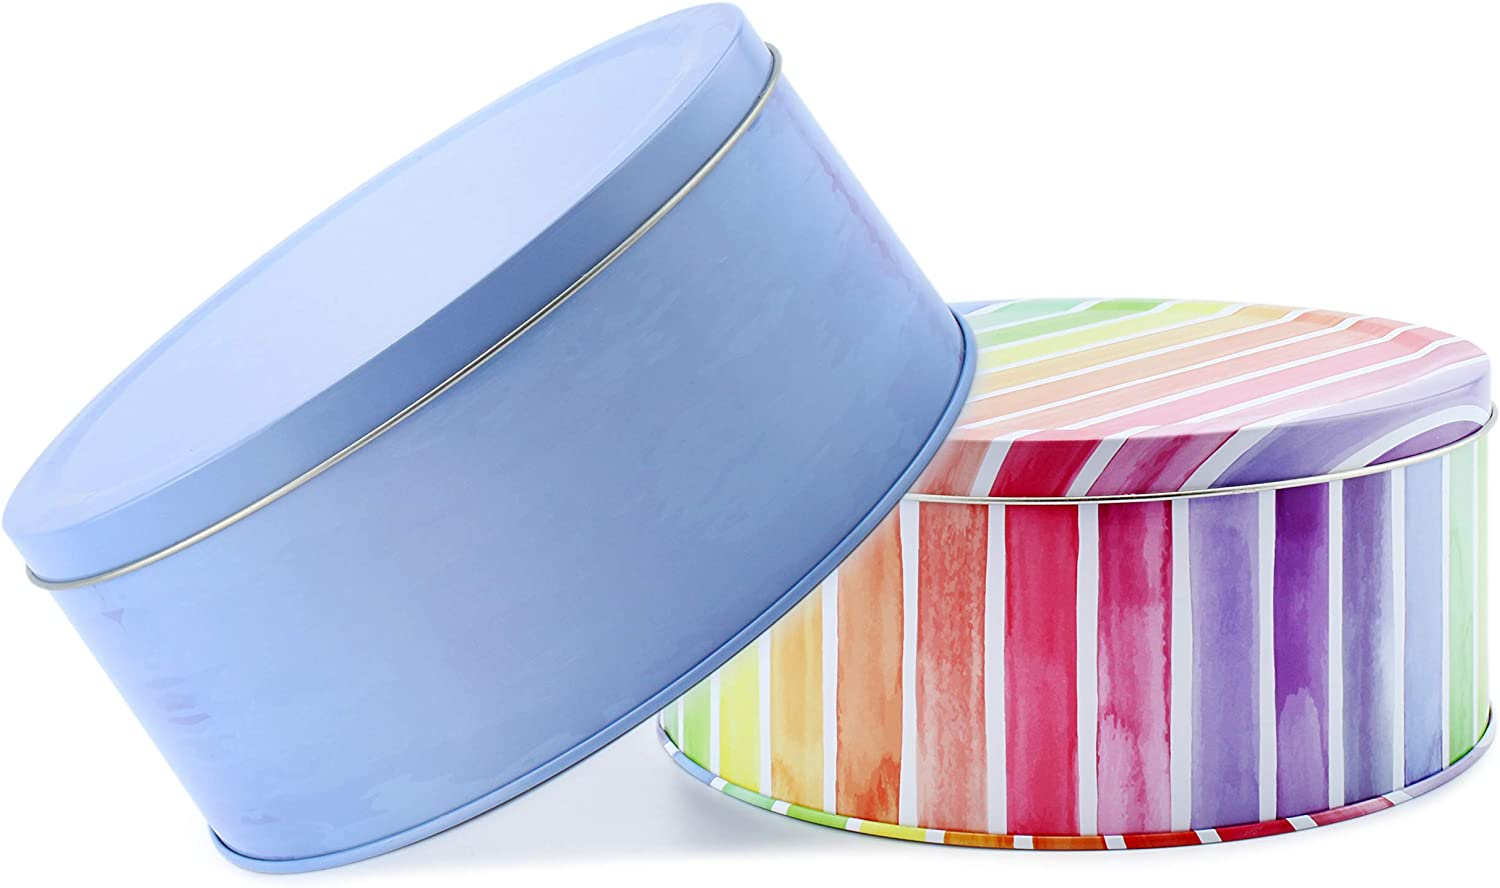 Cornucopia Cookie Tins (Set of 2, Blue and Rainbow); Round Baking and Cake Tins for Easter, Special Occasion and Holidays, 7.75-Inch Wide by 3.6-Inch Tall